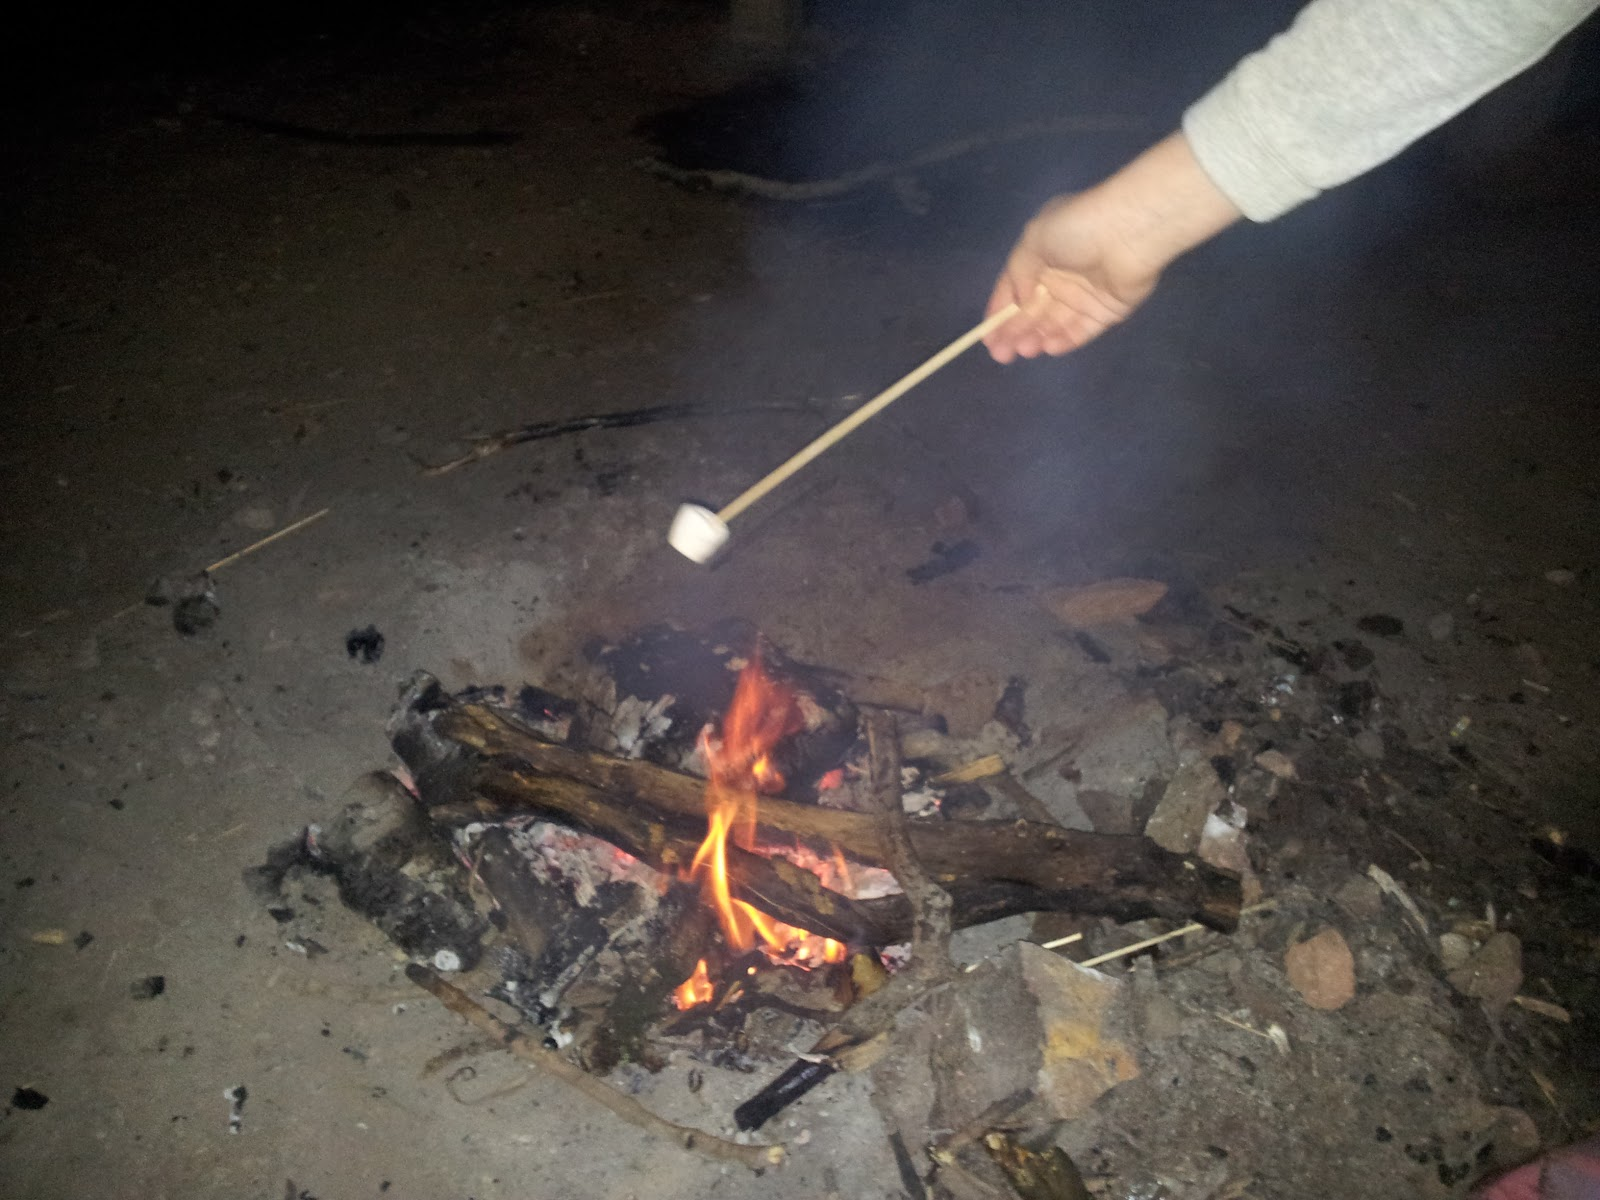 New Years Woods soup fire toast marshmallow